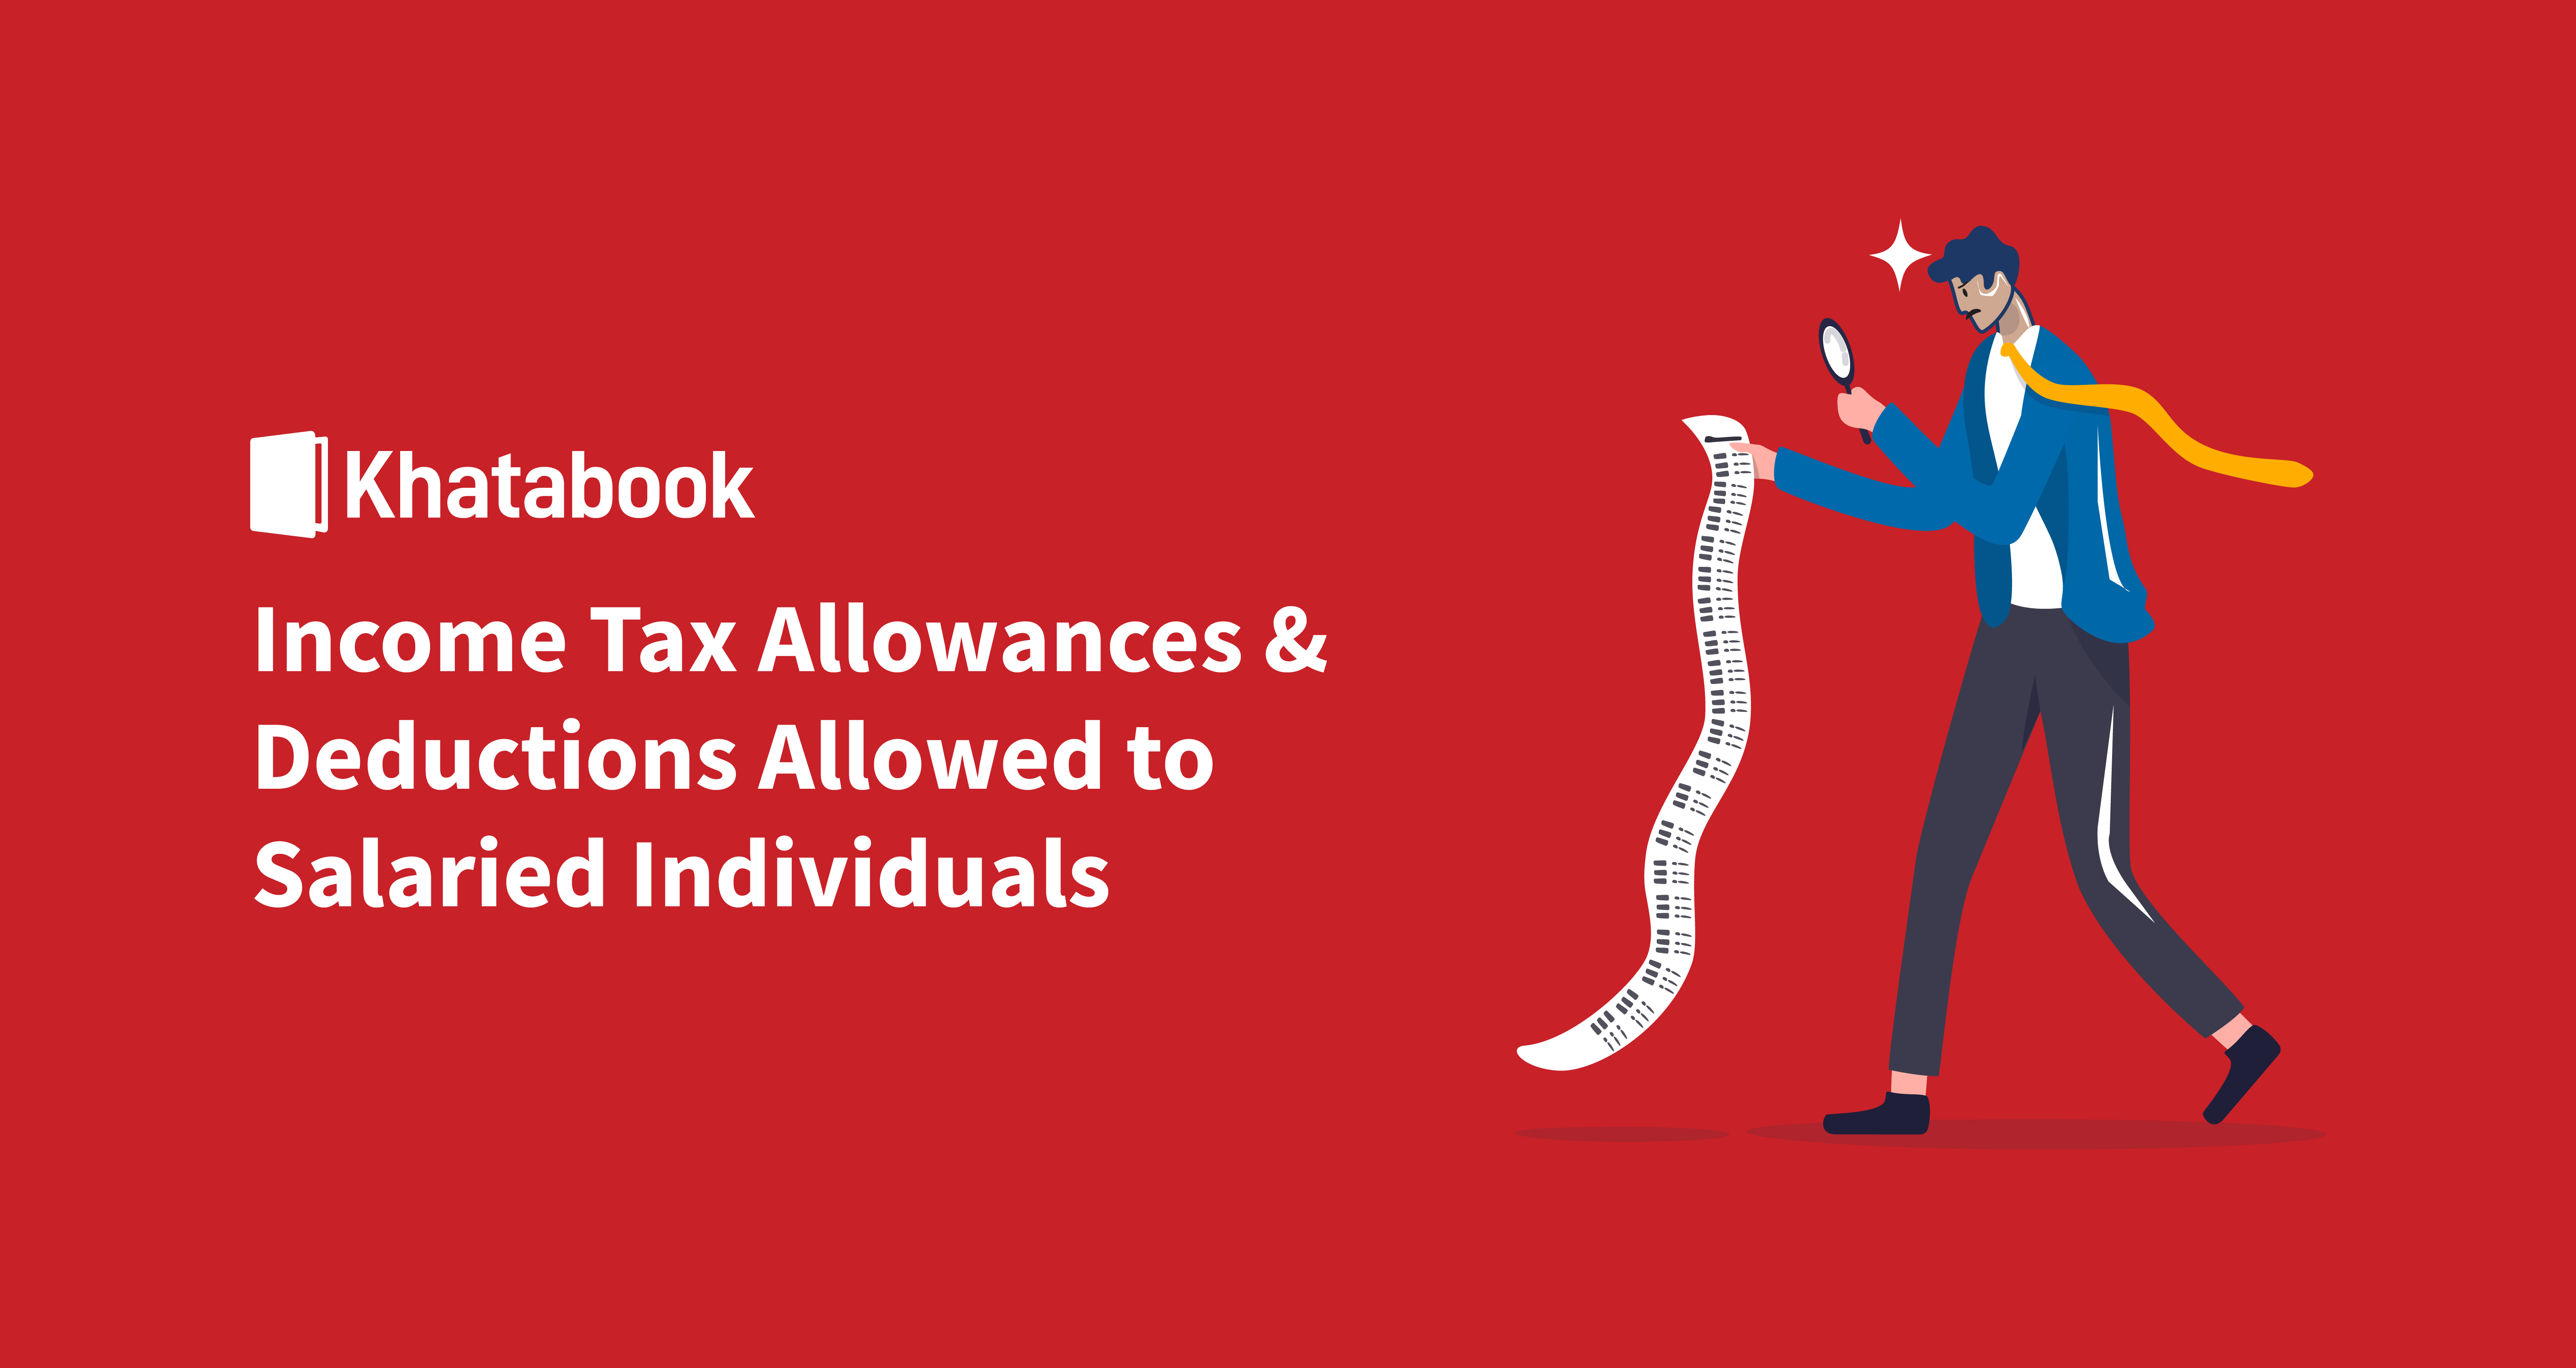 Understanding Income Tax Allowances and Allowed Deductions for Salaried Individuals